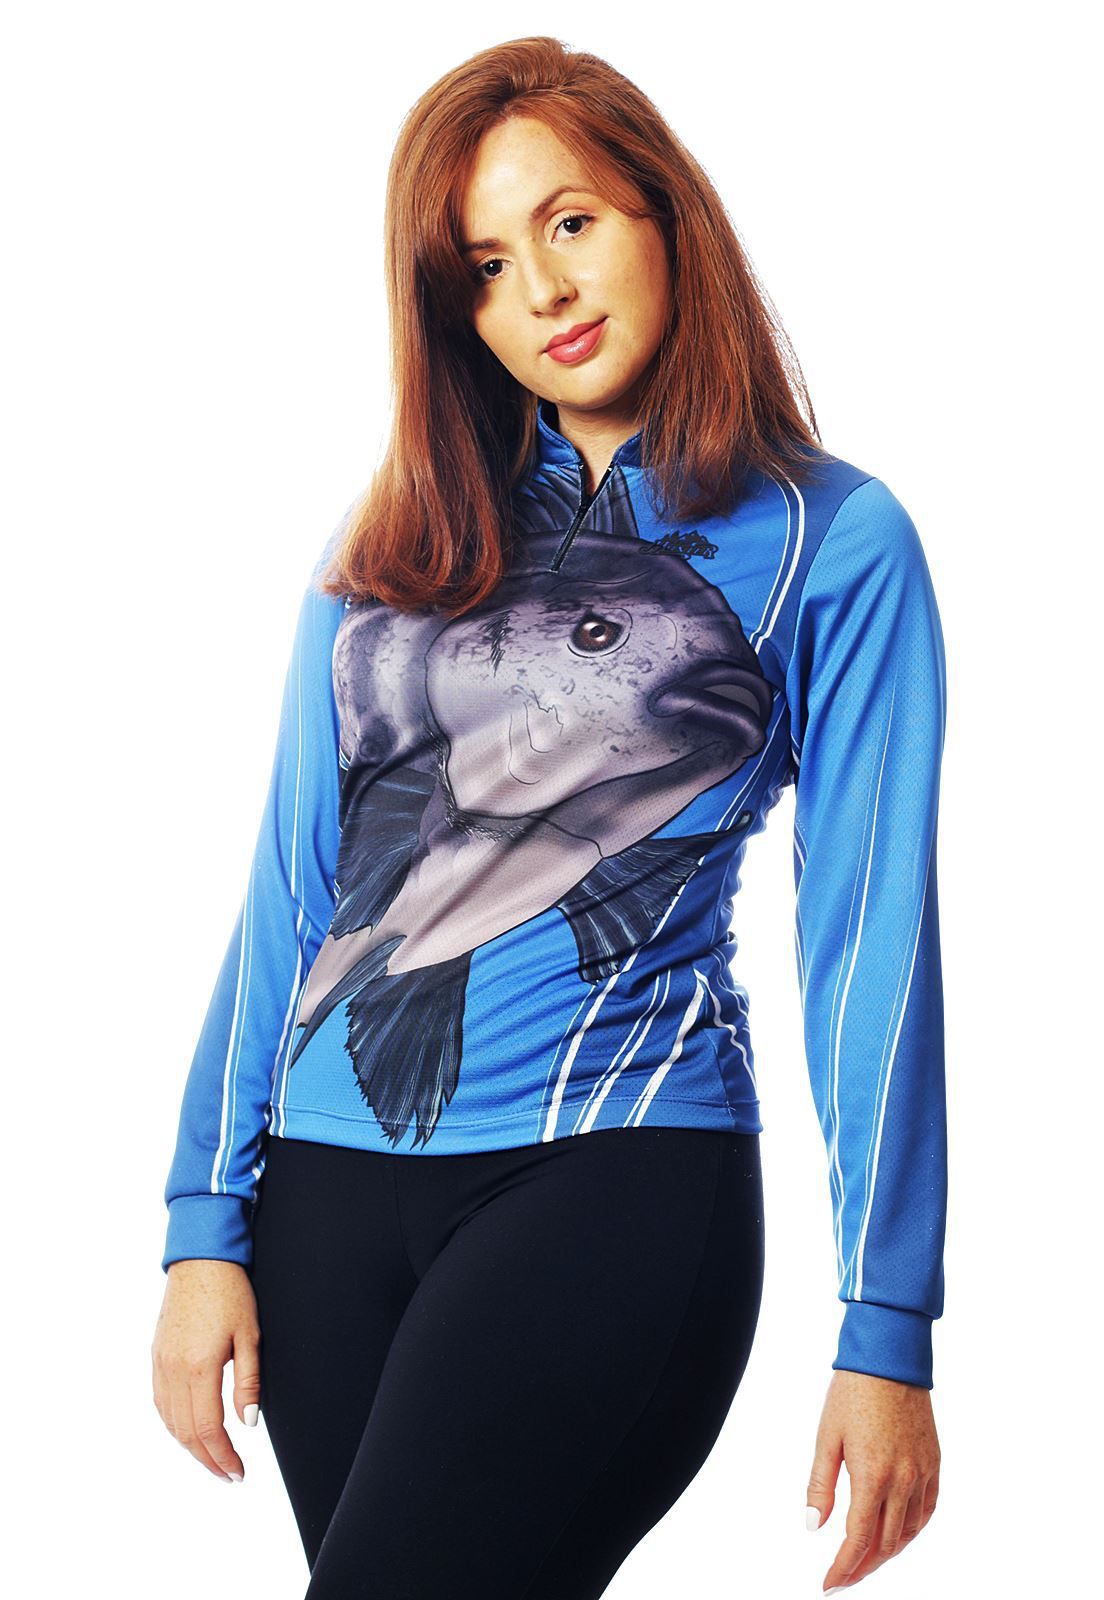 CAMISETA DE PESCA TILÁPIA FEMININA   - REAL HUNTER OUTDOORS